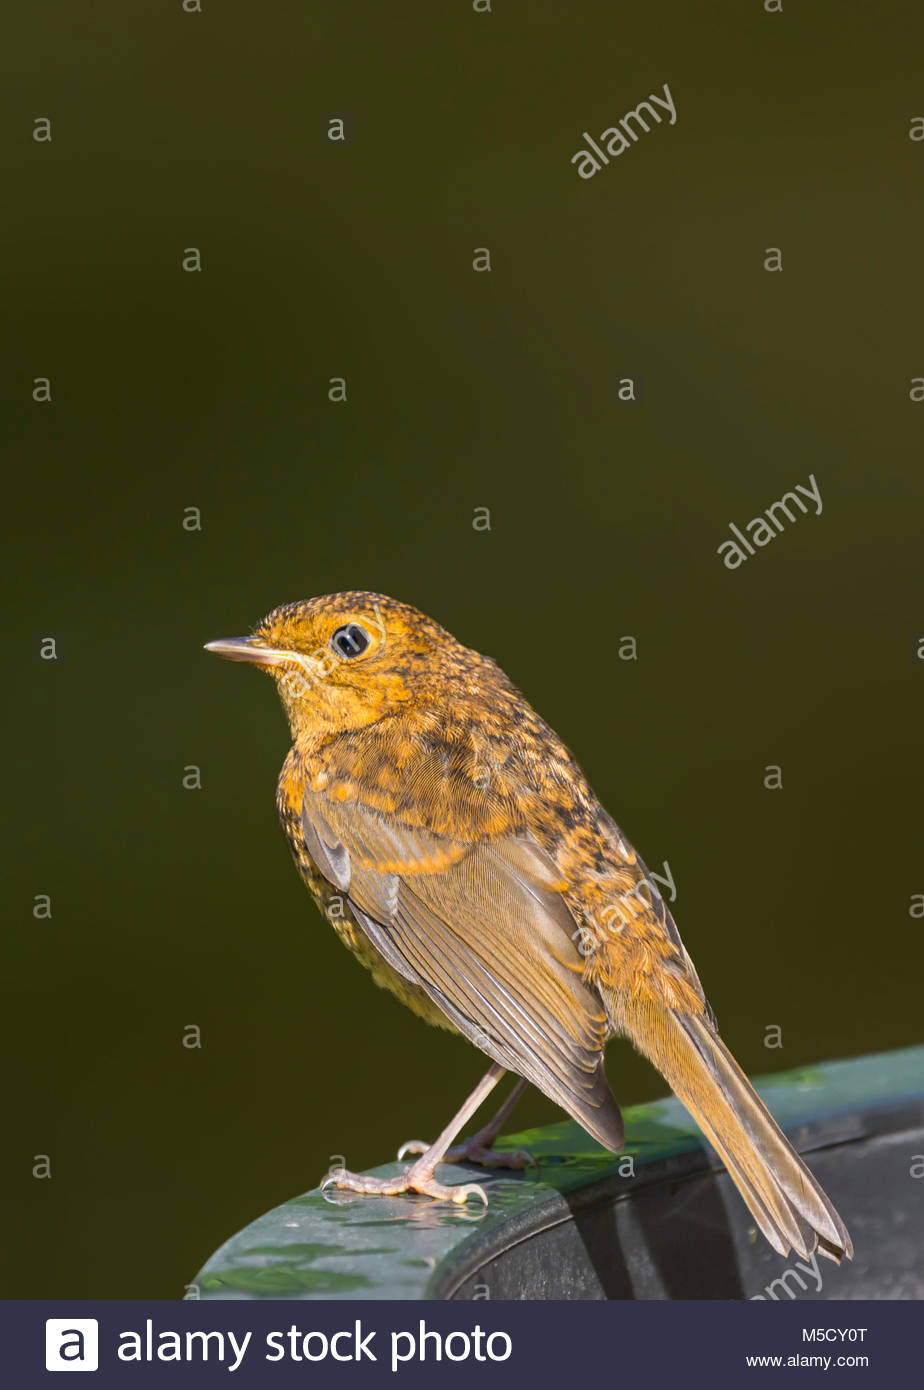 fledgling-robin-redbreast-erithacus-rubecula-perched-in-summer-in-M5CY0T.jpg